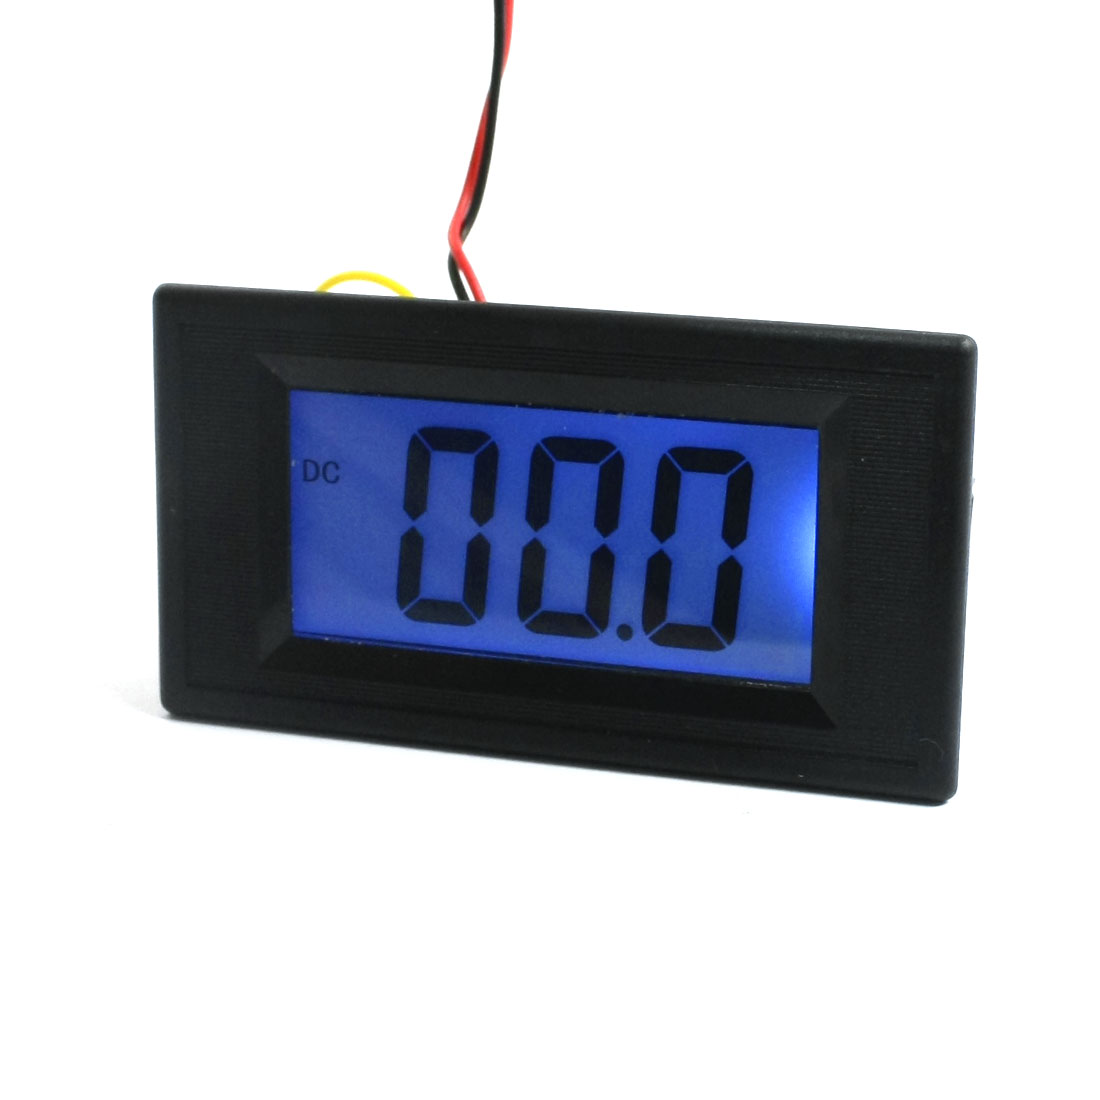 DC-0-200mV-Range-Panel-Mount-Black-LCD-Digital-Display-3-1-2-Voltmeter